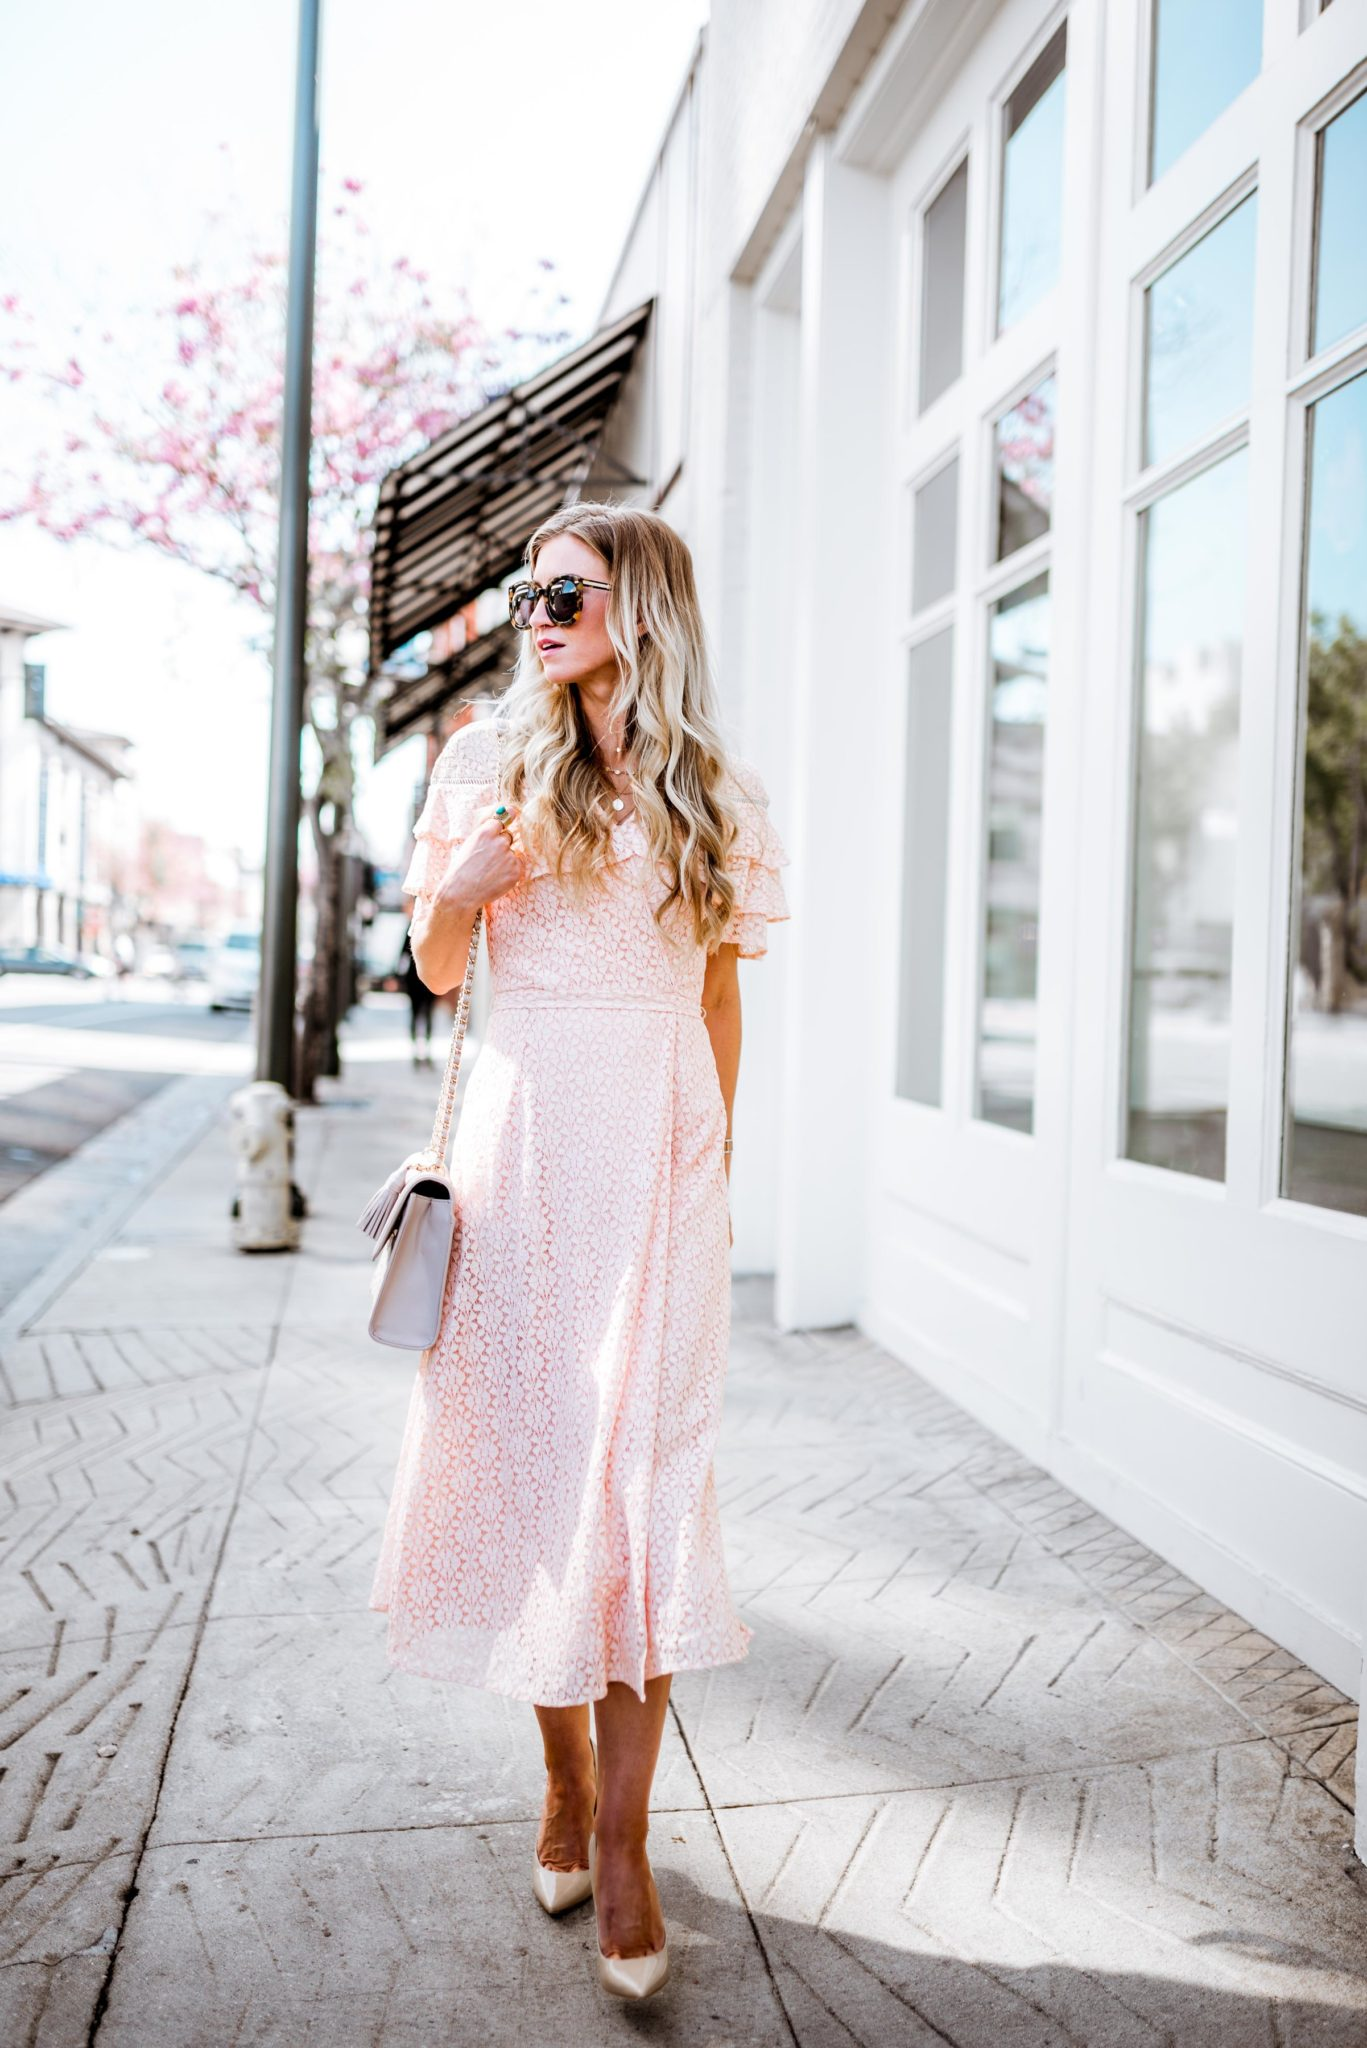 Blush lace ruffled Easter dress